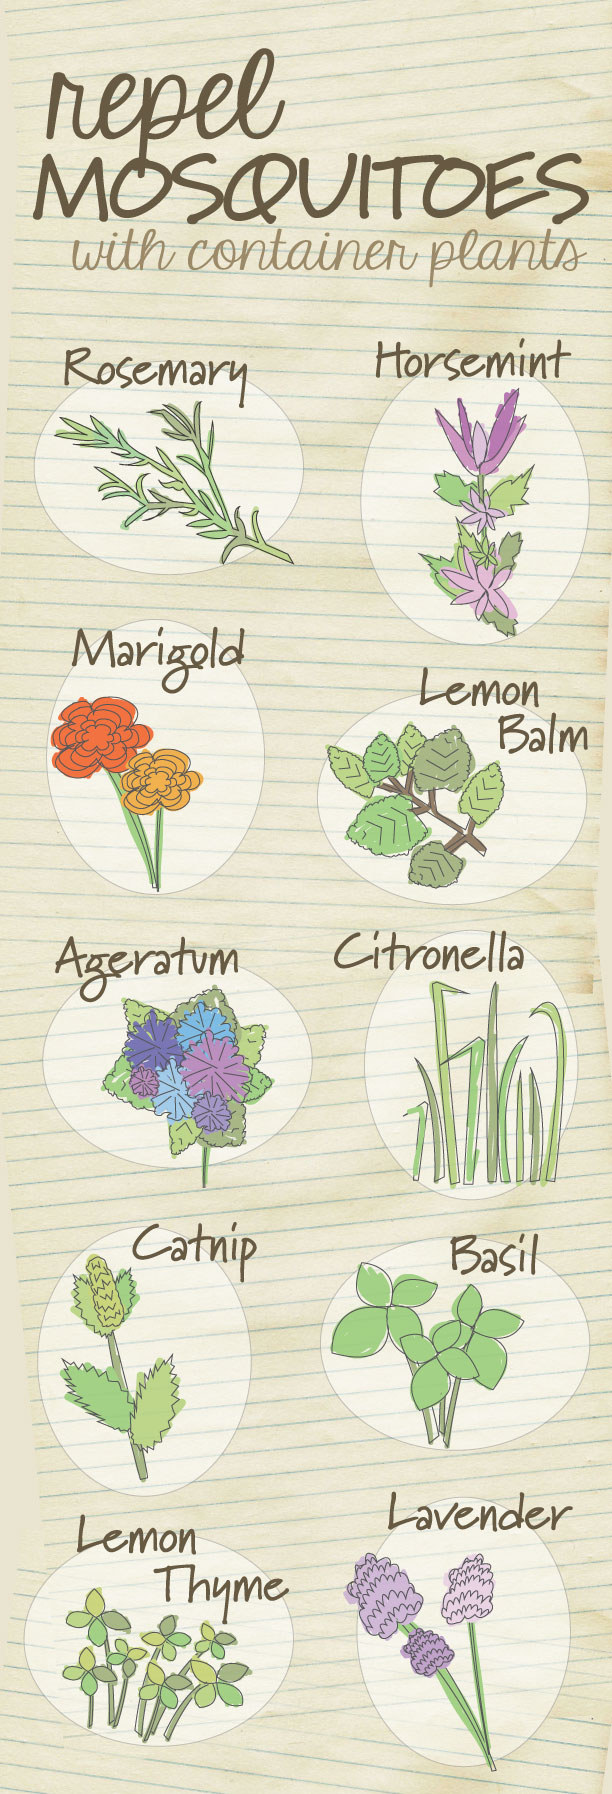 Get rid of the bug spray and repel mosquitos naturally using these plants.